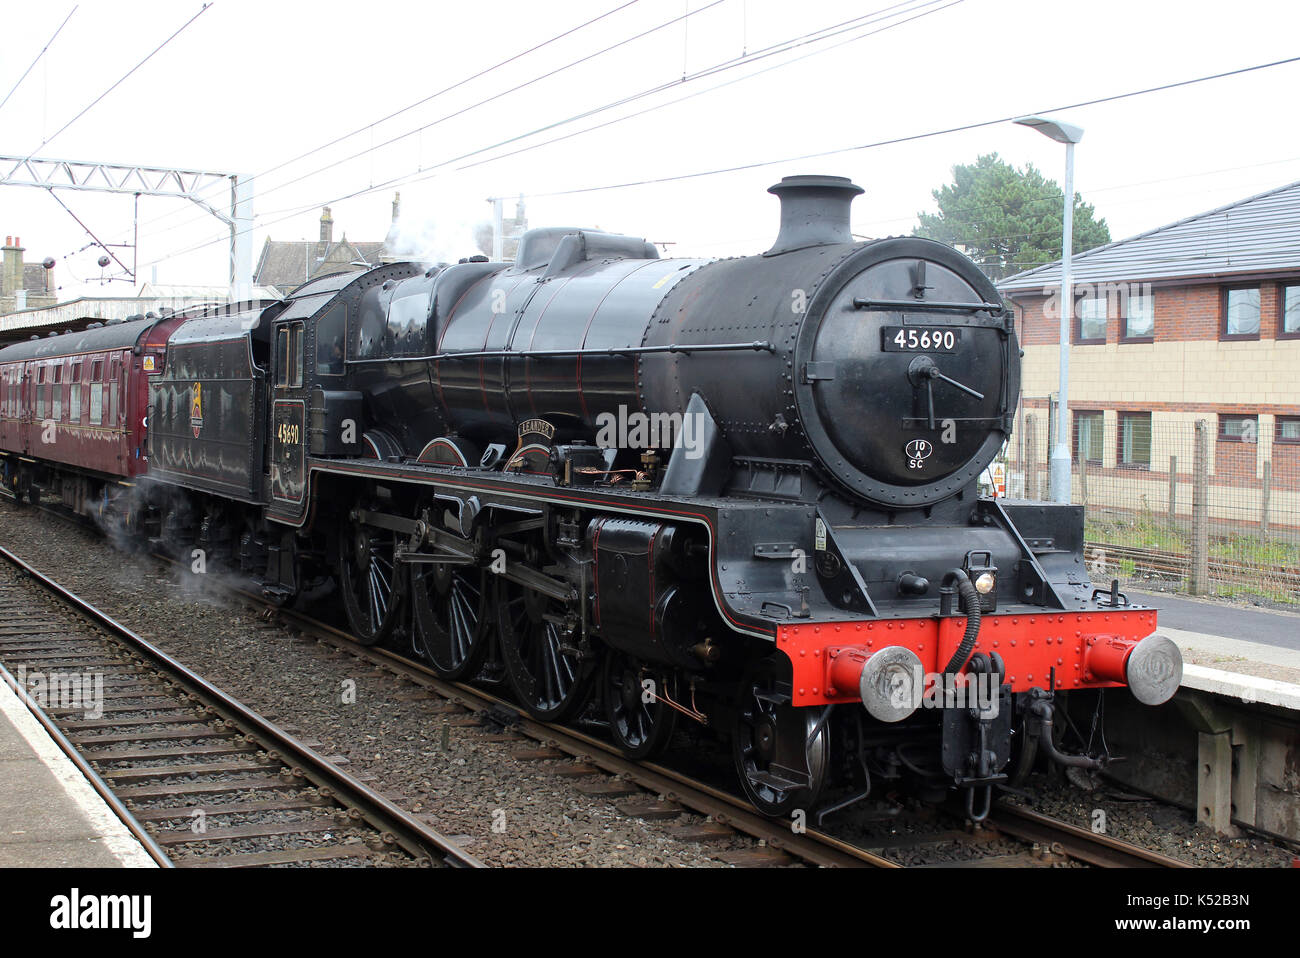 Jubilee class steam locomotive number 45690 named Leander in Carnforth railway station platform 1 alongside the West Coast Main Line. - Stock Image